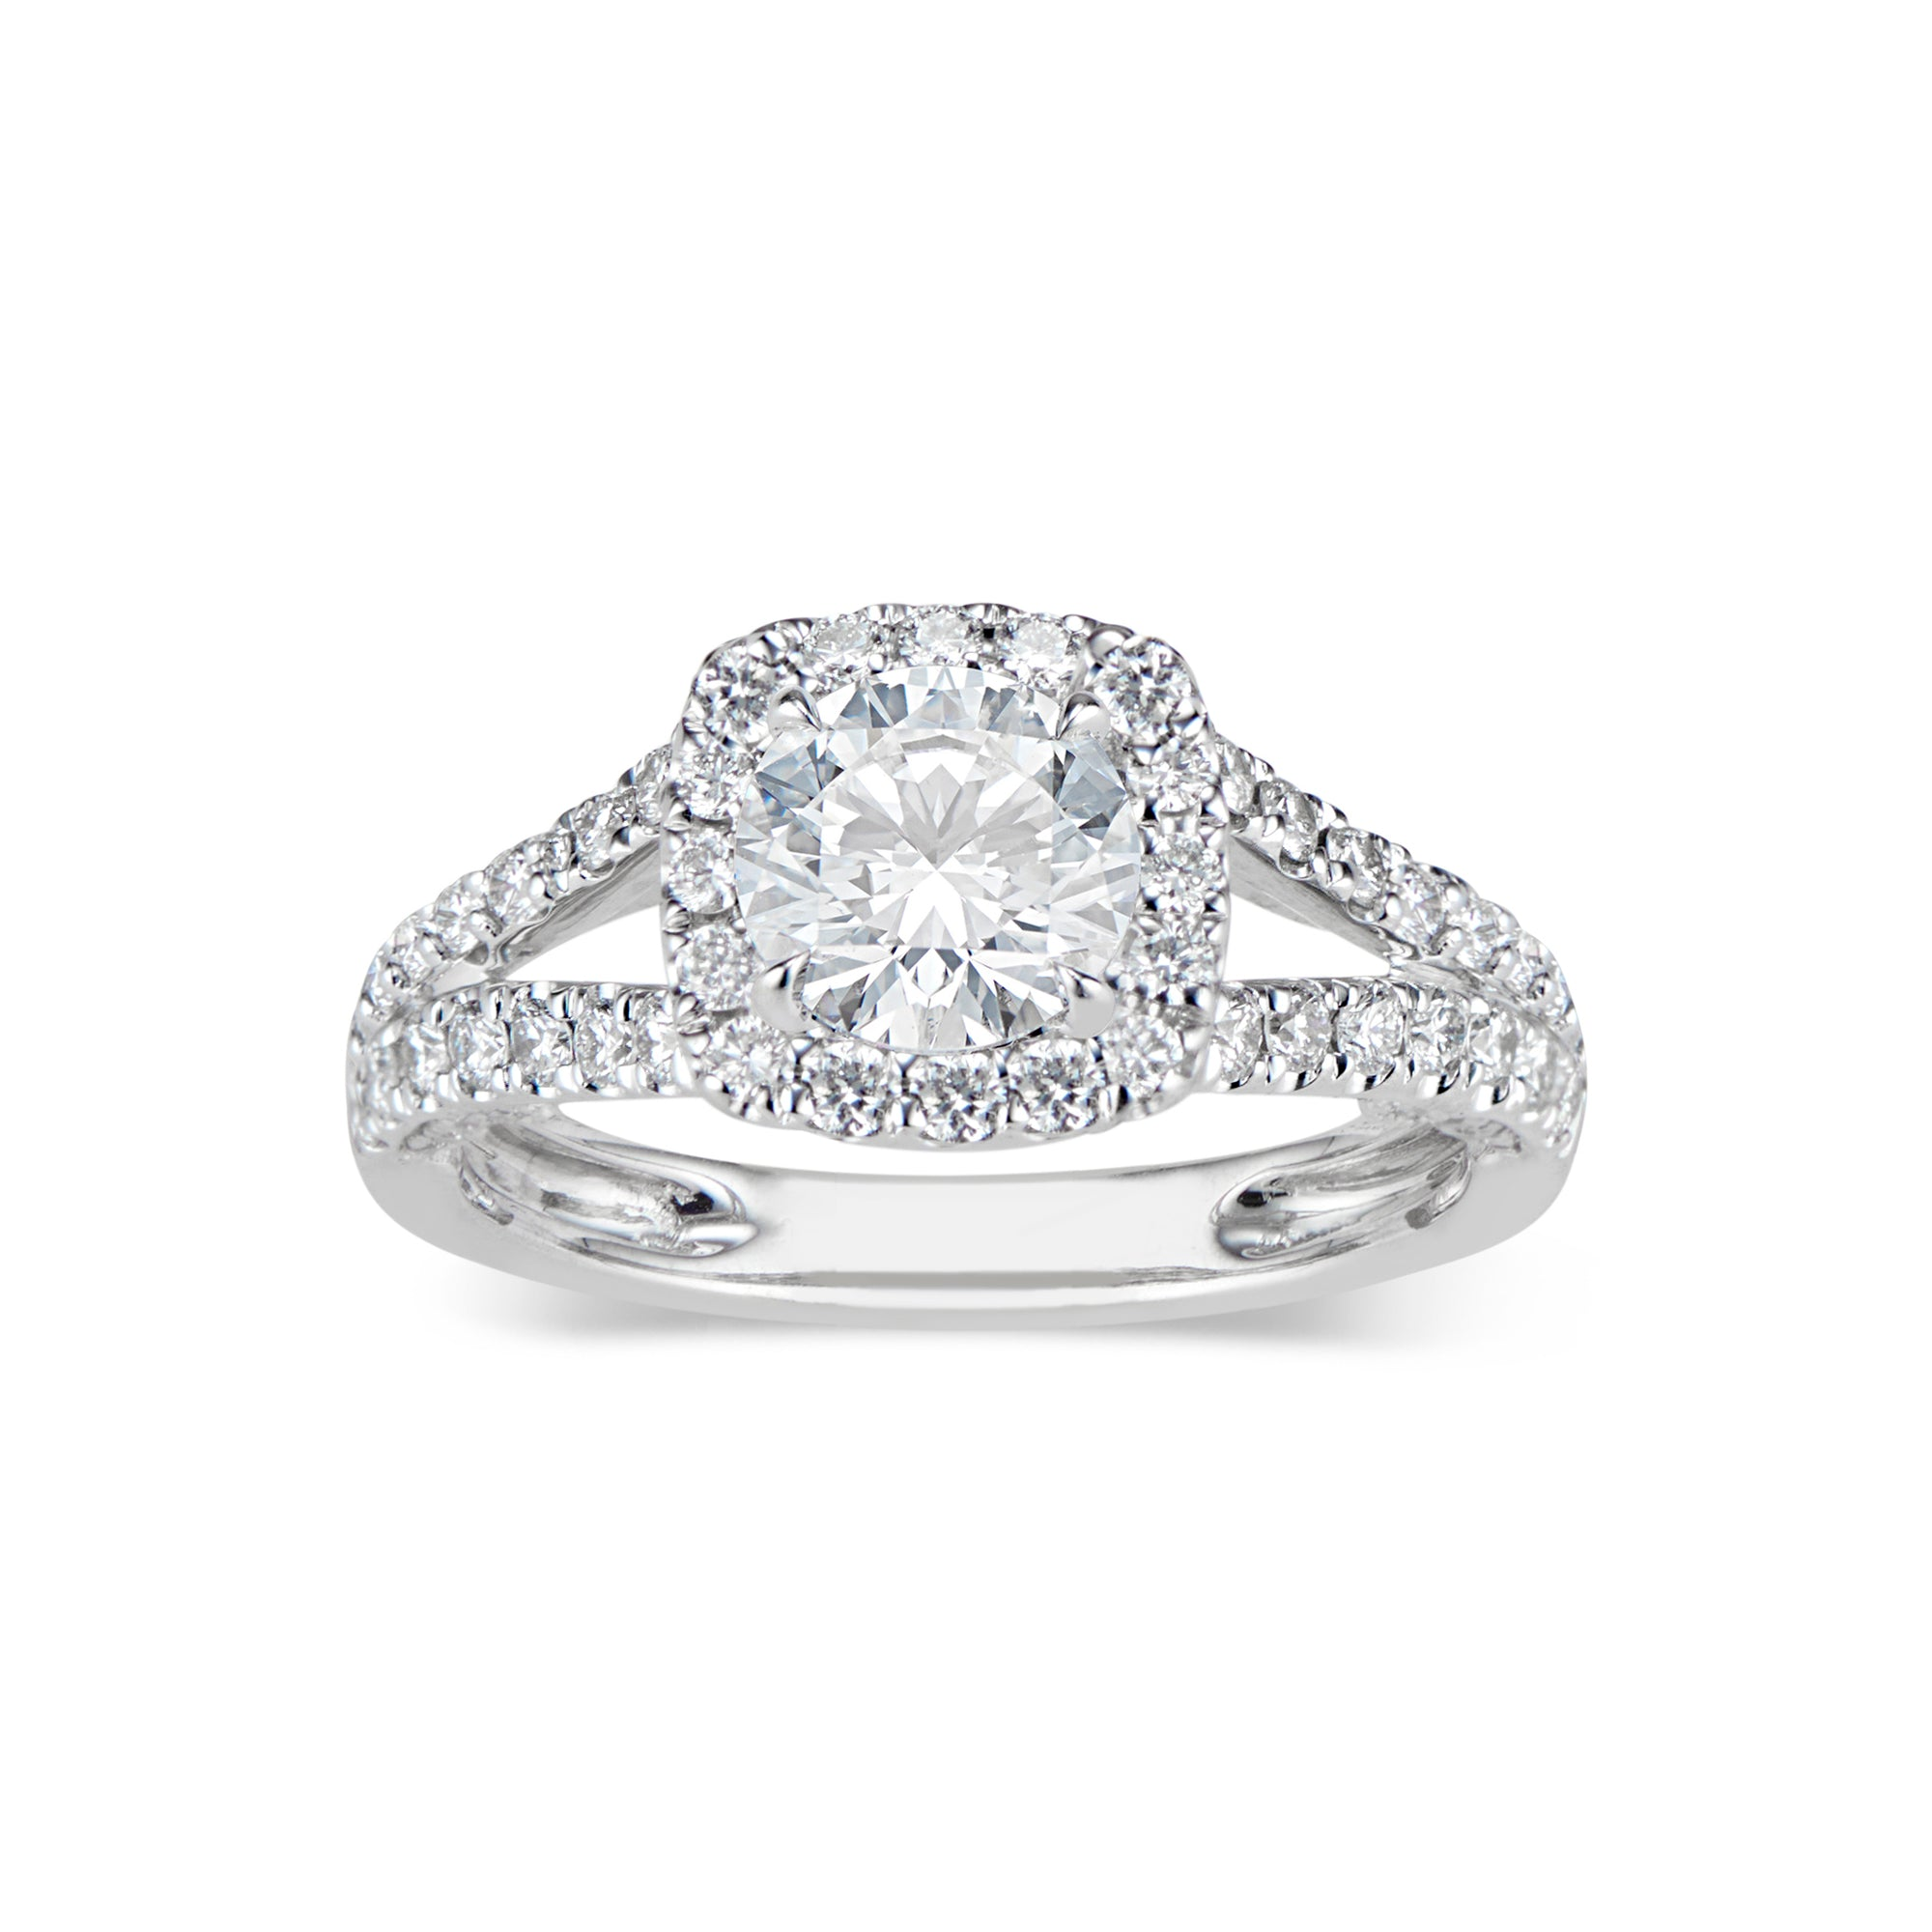 Cushion Halo Diamond Engagement Ring with Split Shank